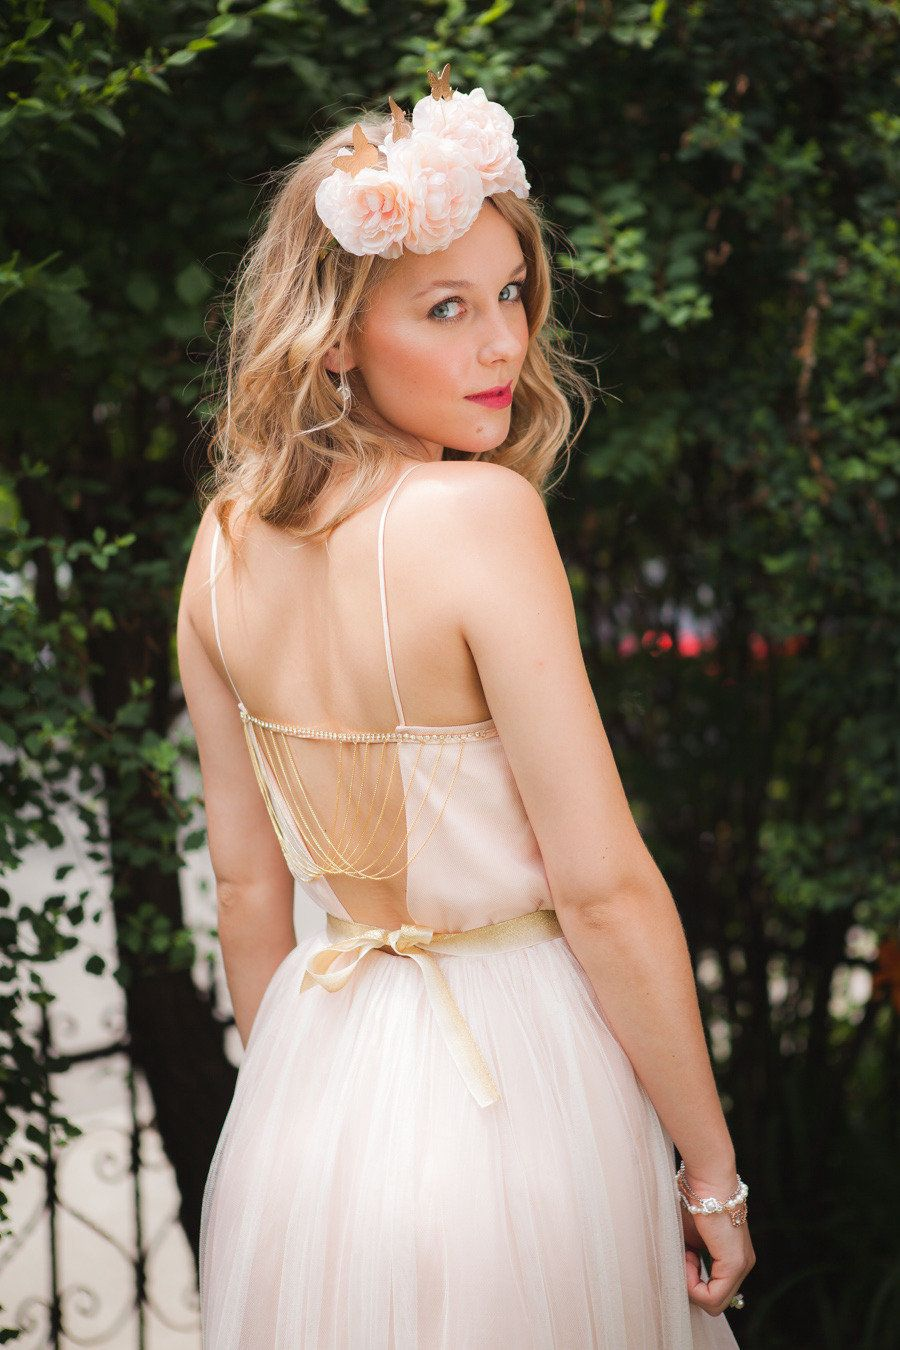 Too much cleavage wedding dress  Vintage French Romance PhotoShoot from Sonia Bourdon  French